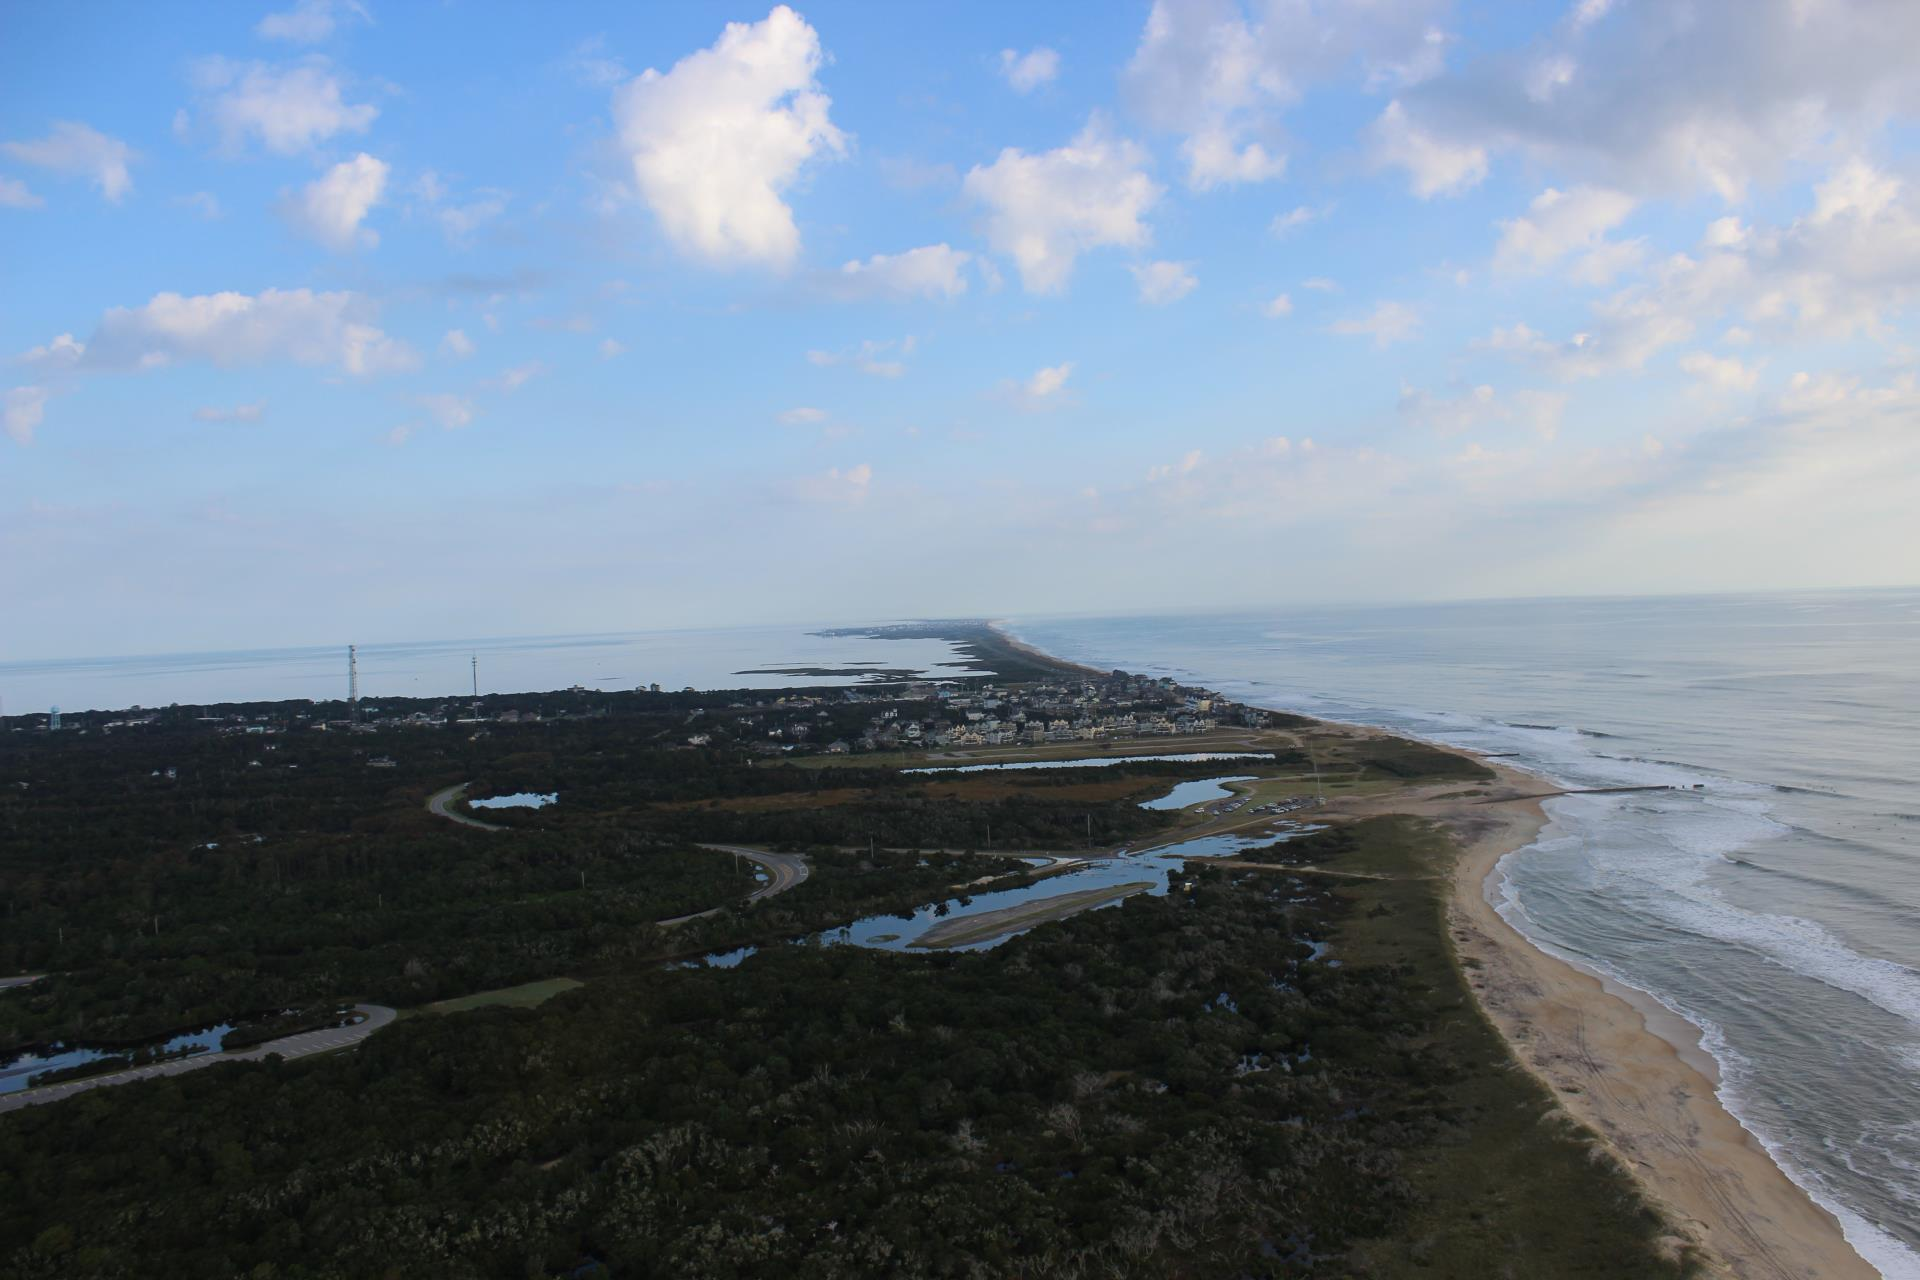 Aerial of NC 12 looking North on Hatteras Island